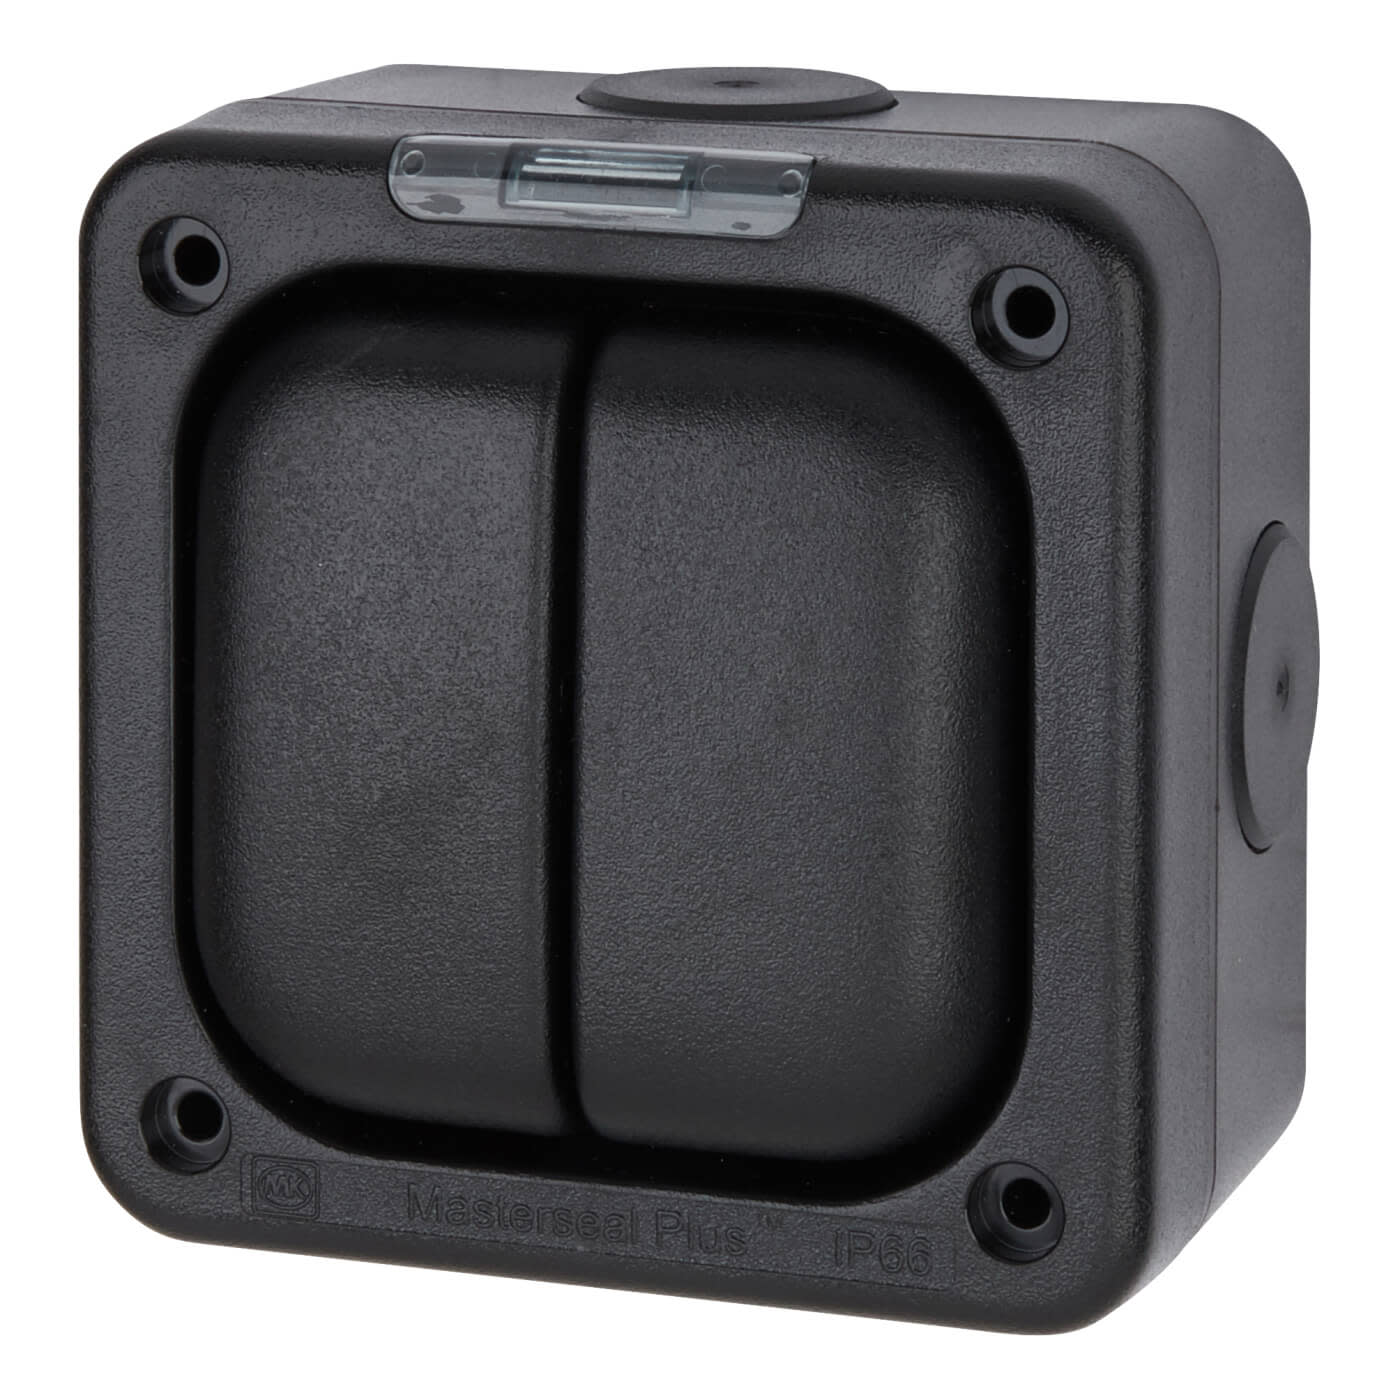 MK Masterseal Plus 10A IP66 2 Gang 1 Way Outdoor Switch - Black)